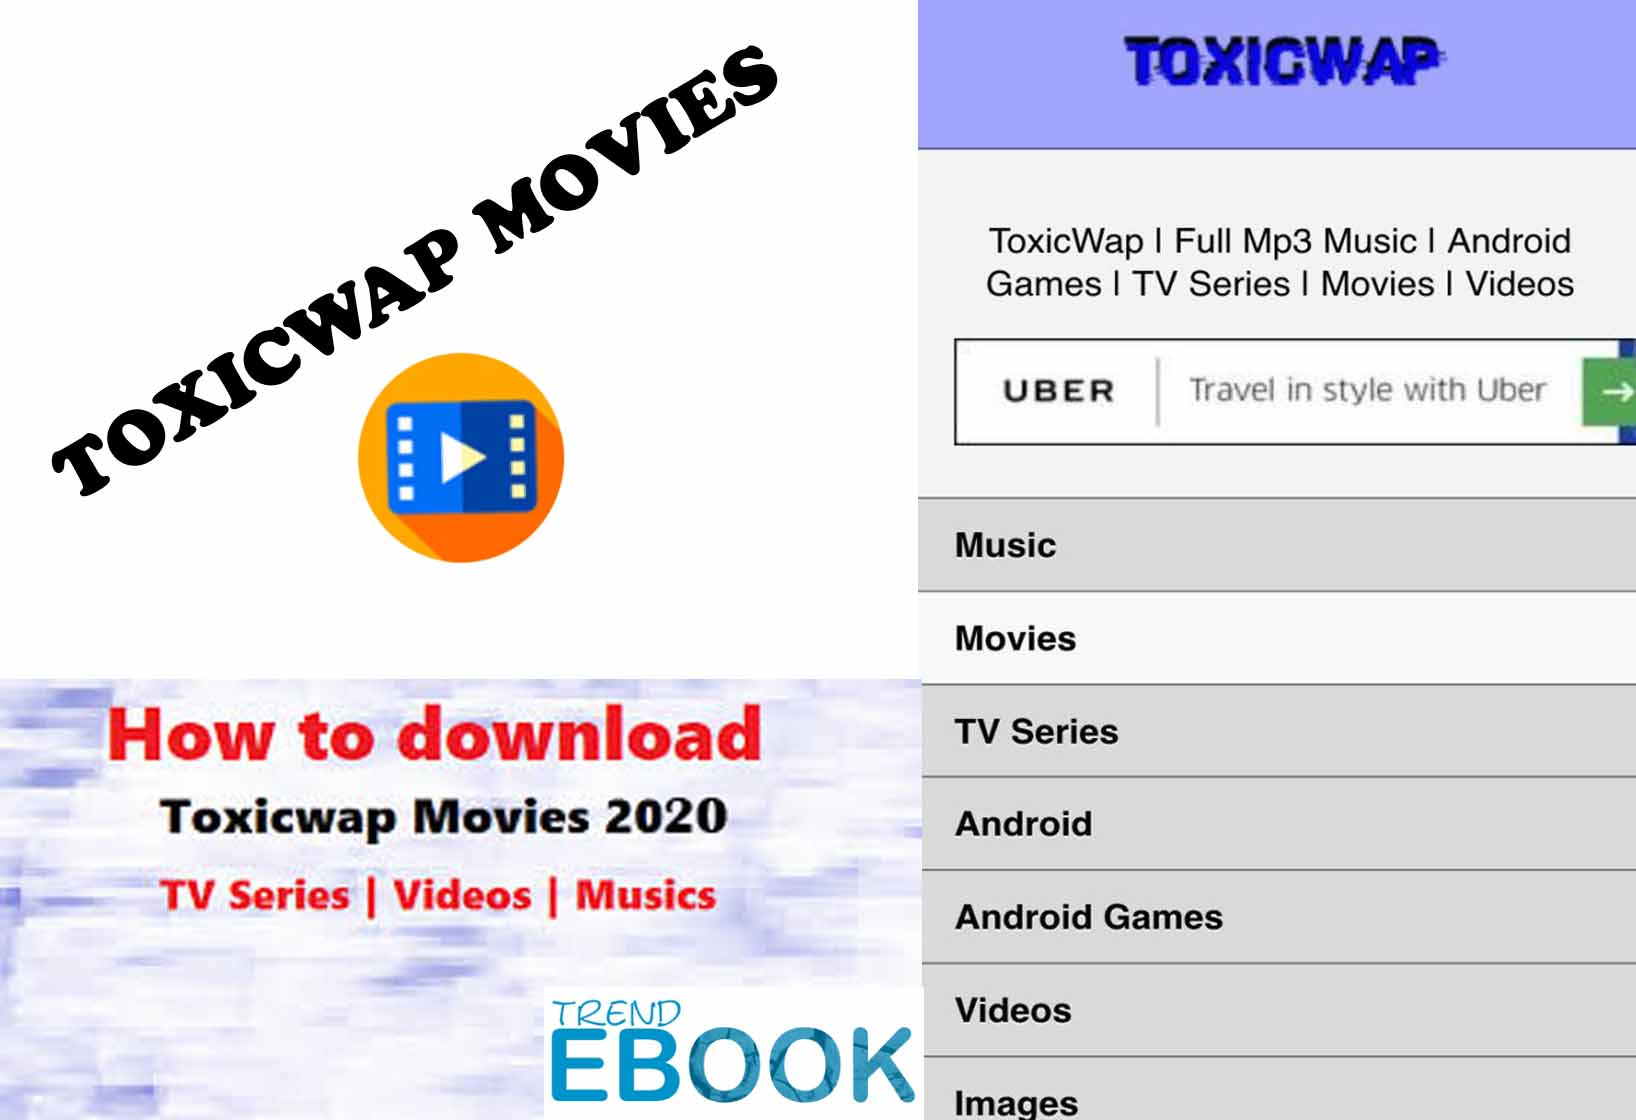 Toxicwap Movies – How to Download Music | Movies | TV Series | Toxicwap Tv Series